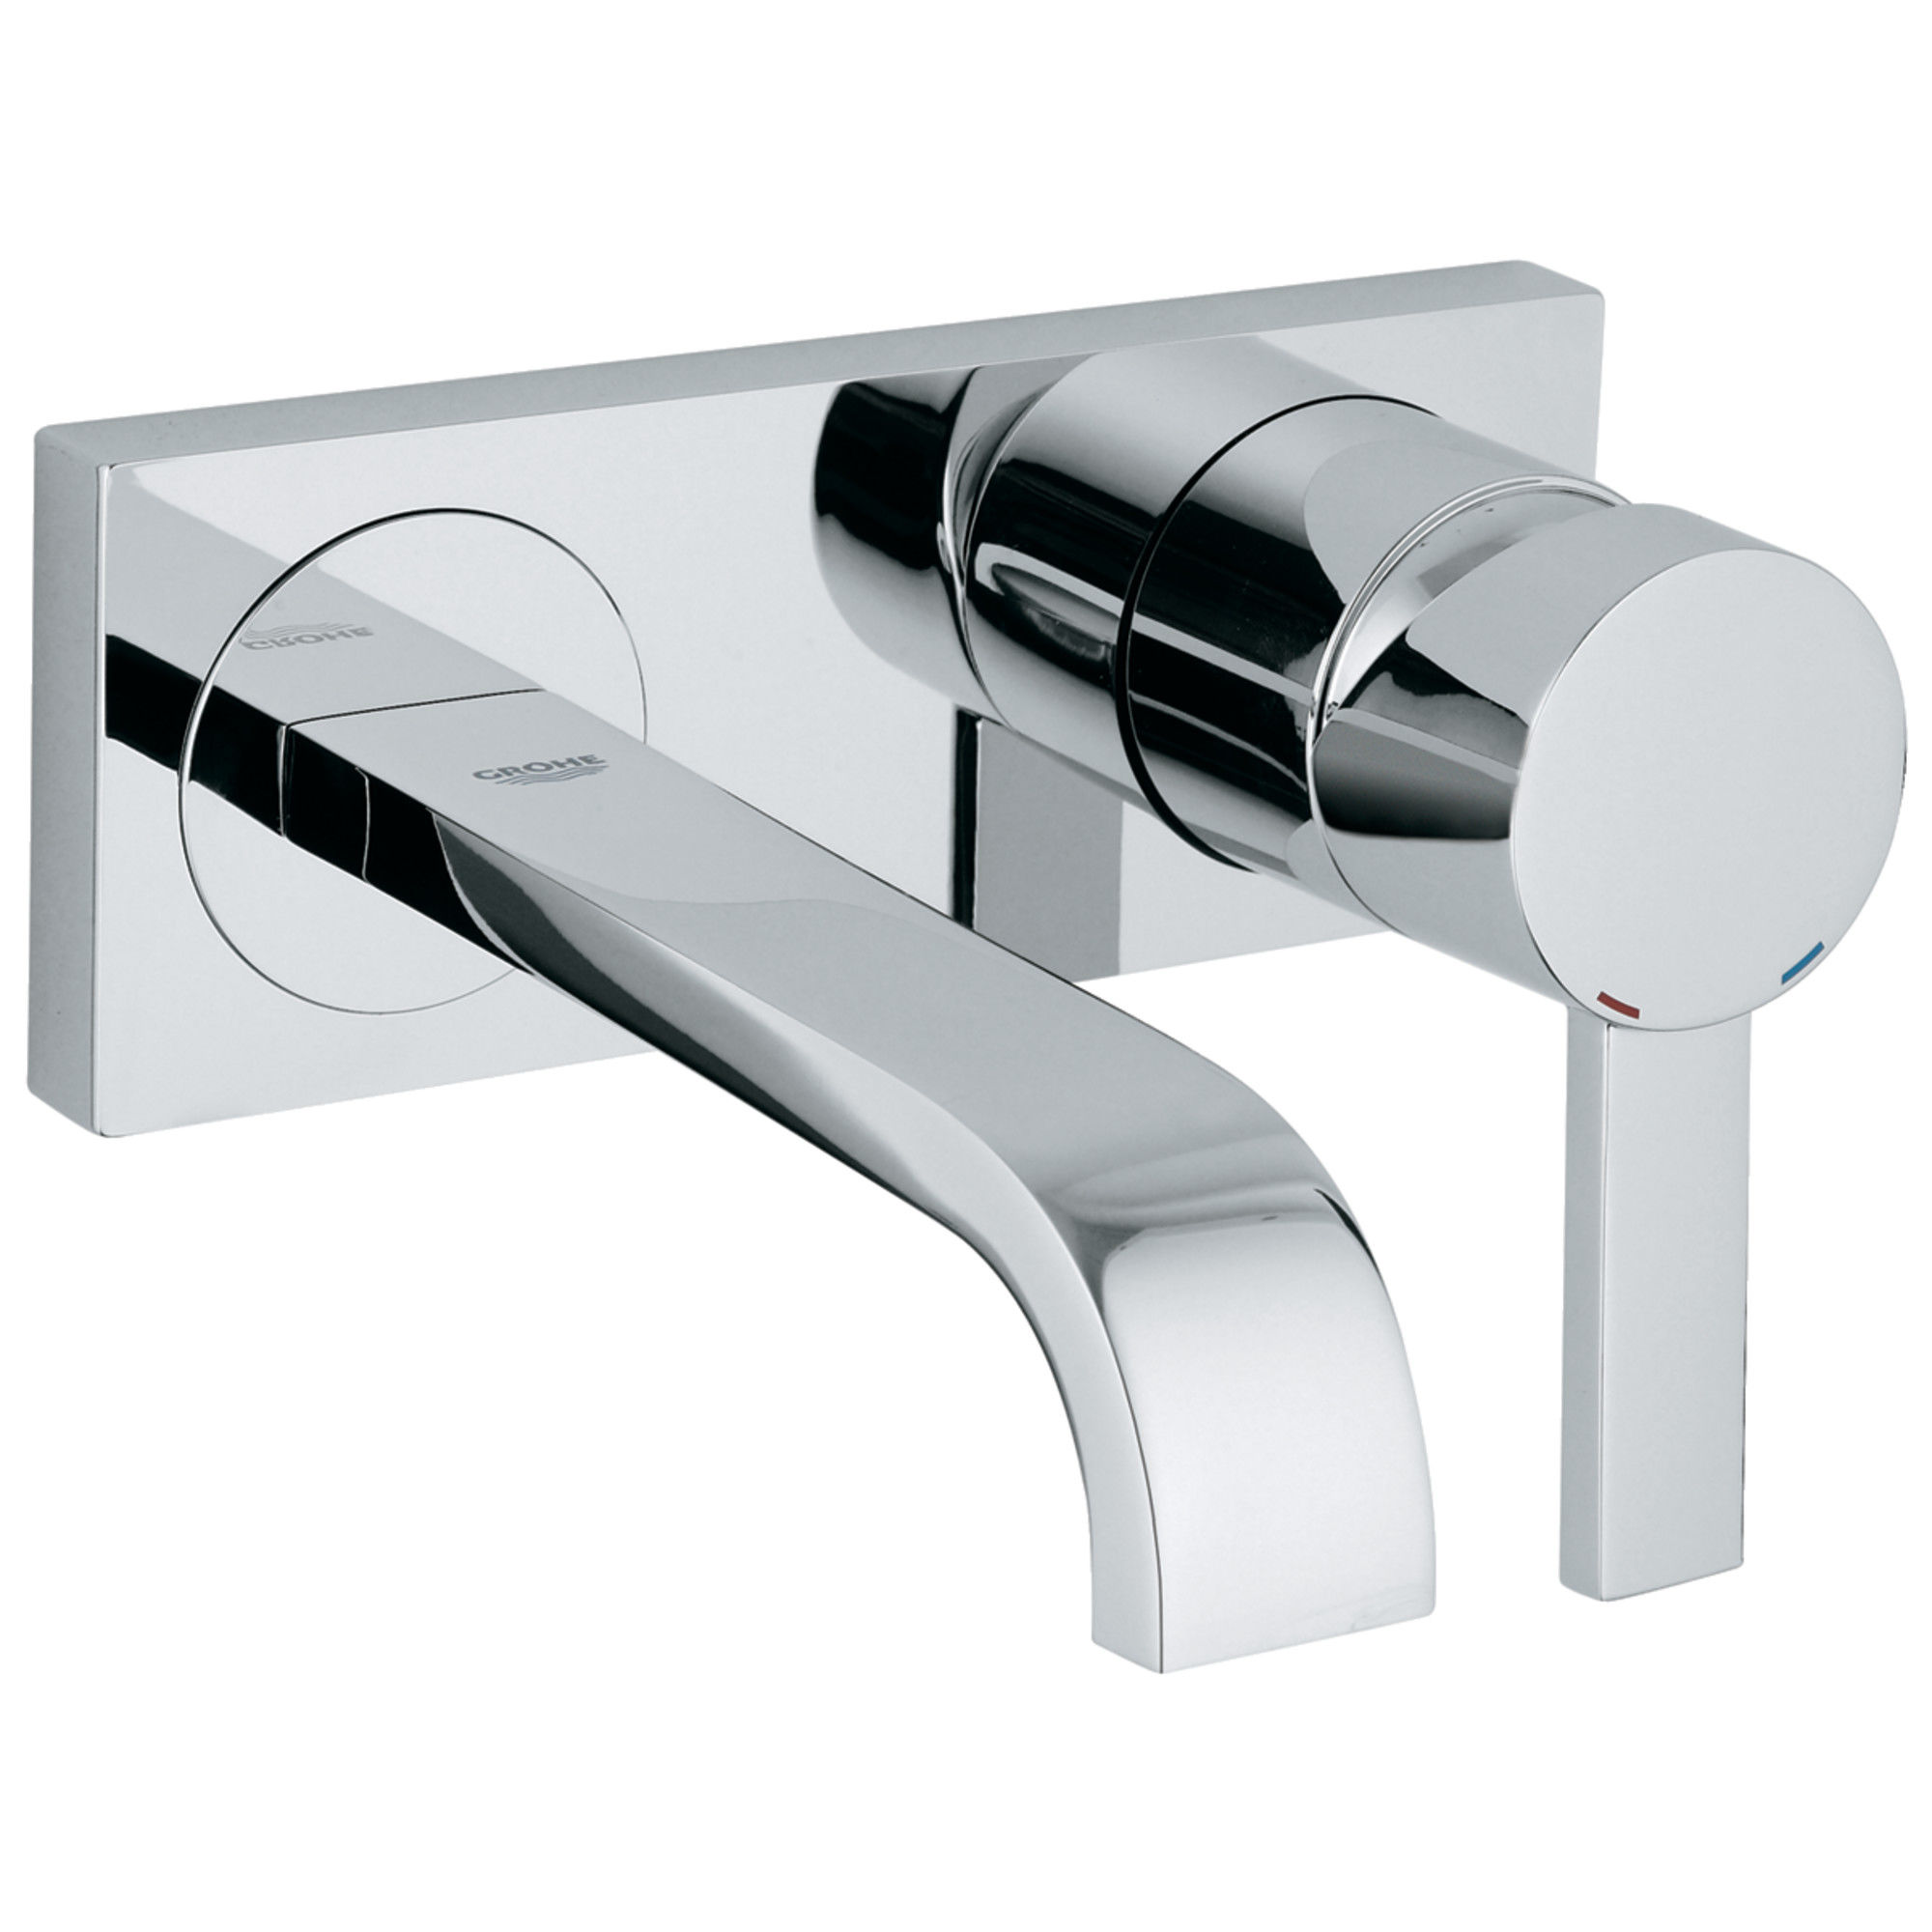 Grohe Allure Faucets at Faucet.com - Grohe 19 300 A